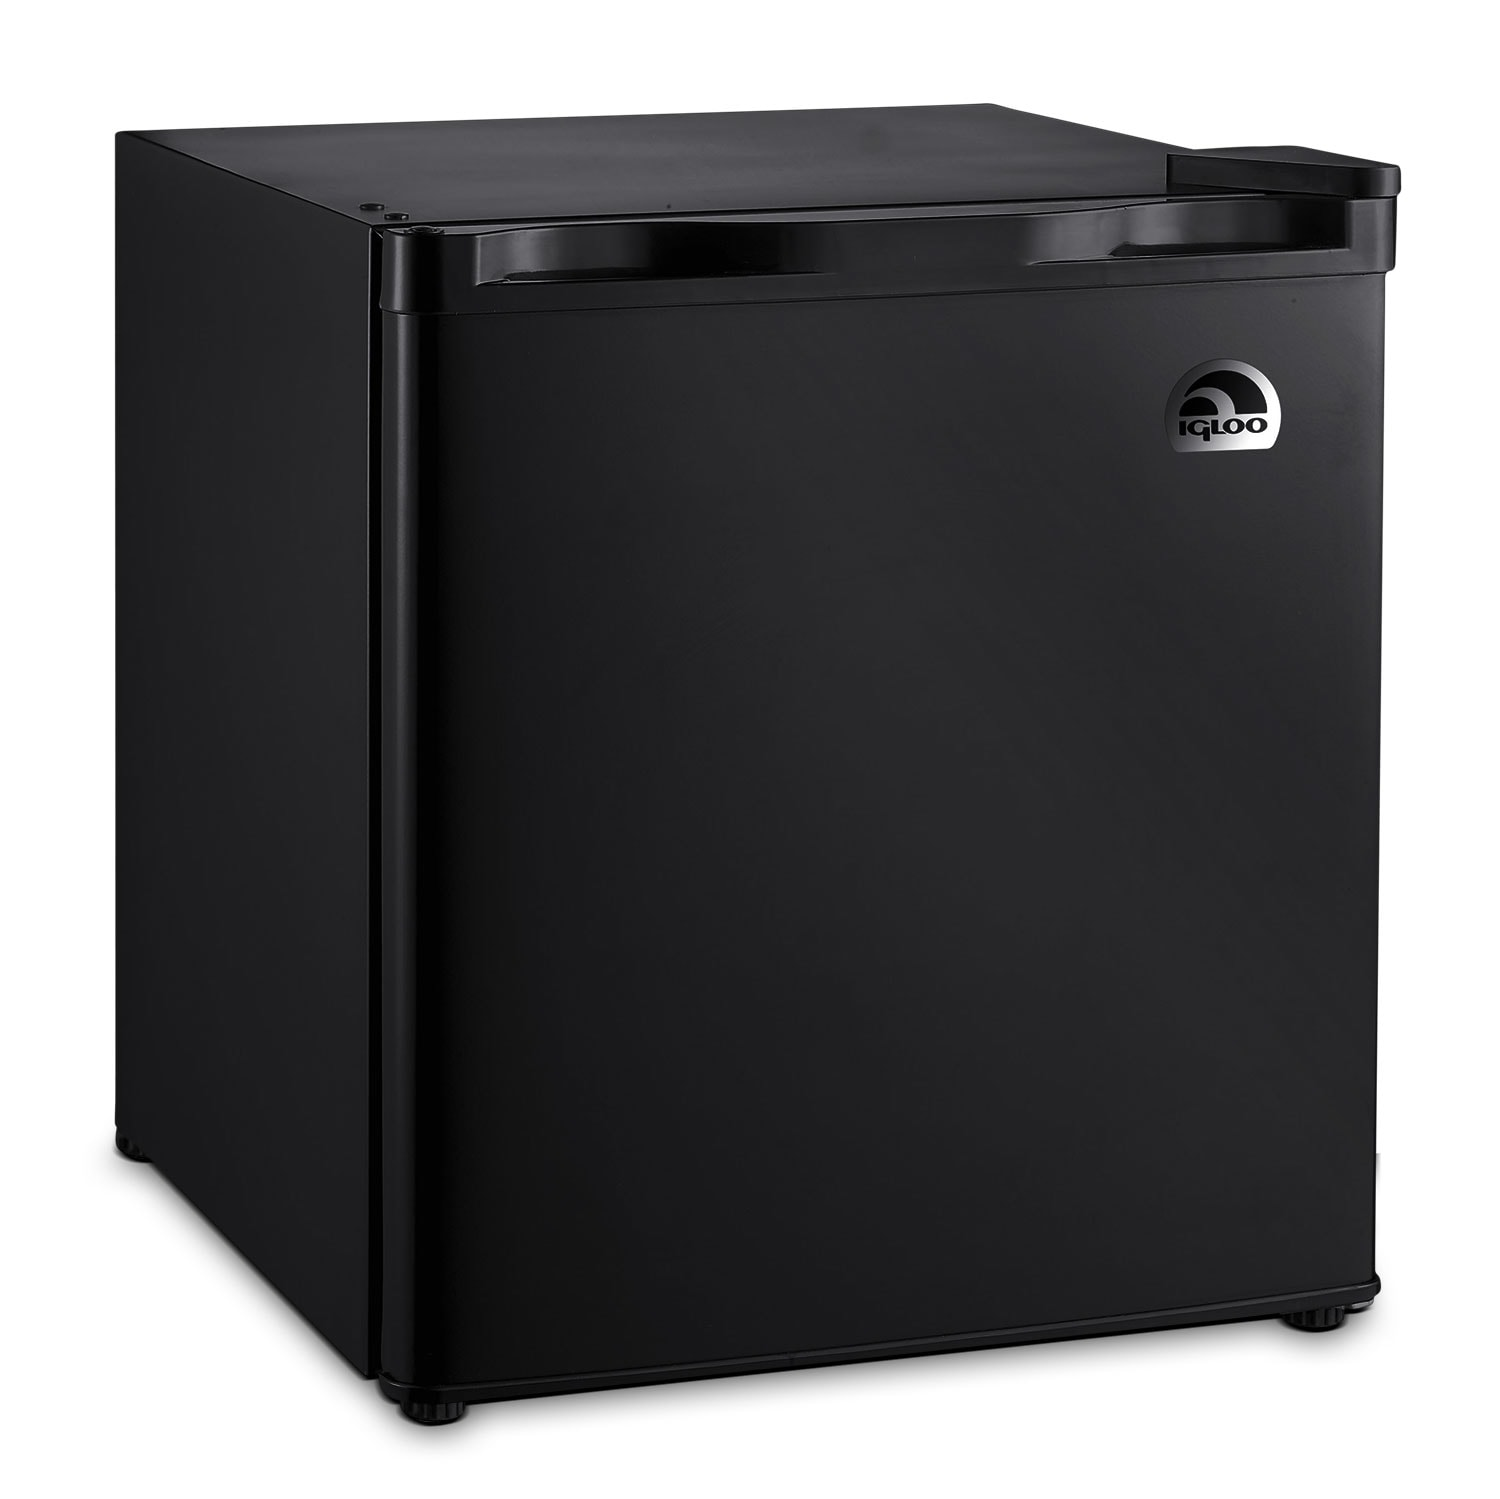 Refrigerators and Freezers - Igloo 1.6 Cu. Ft. Compact Refrigerator – Black